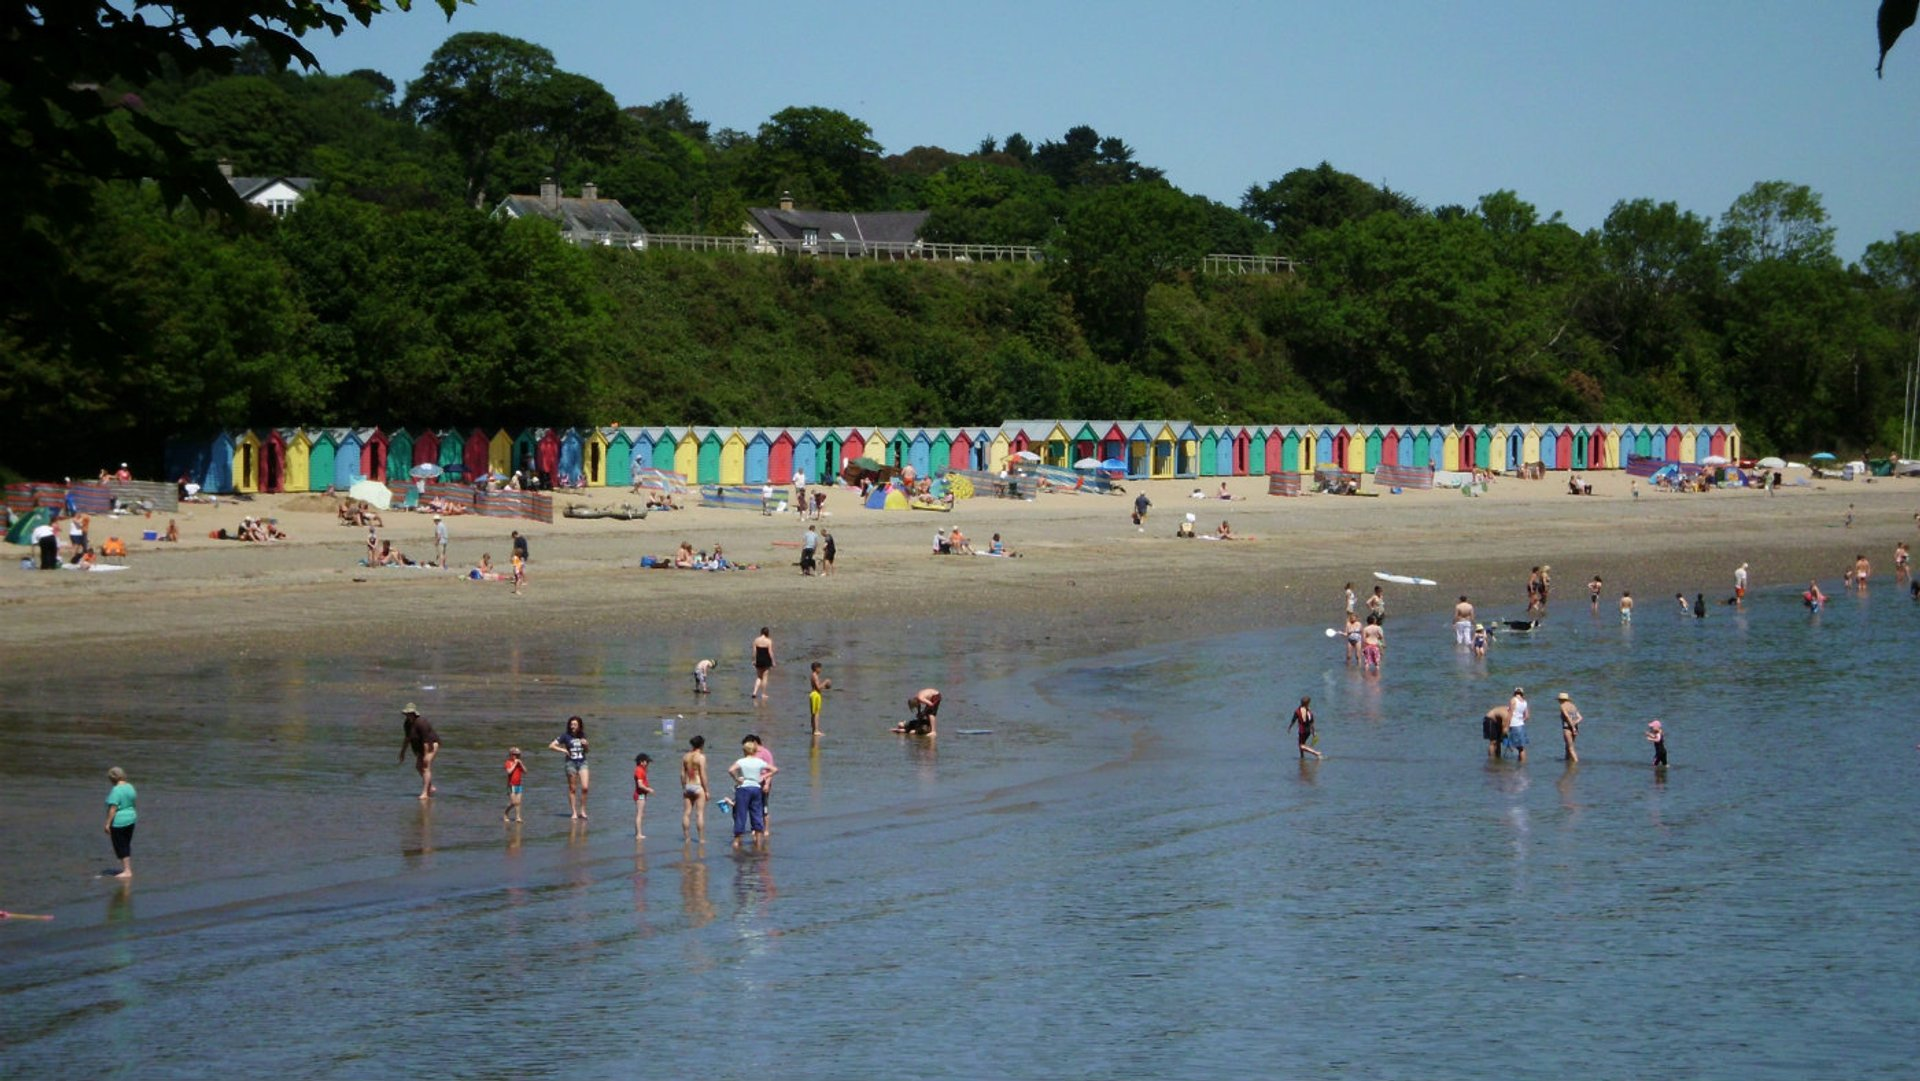 Llanbedrog beach (PHOTO CREDIT: National trust)